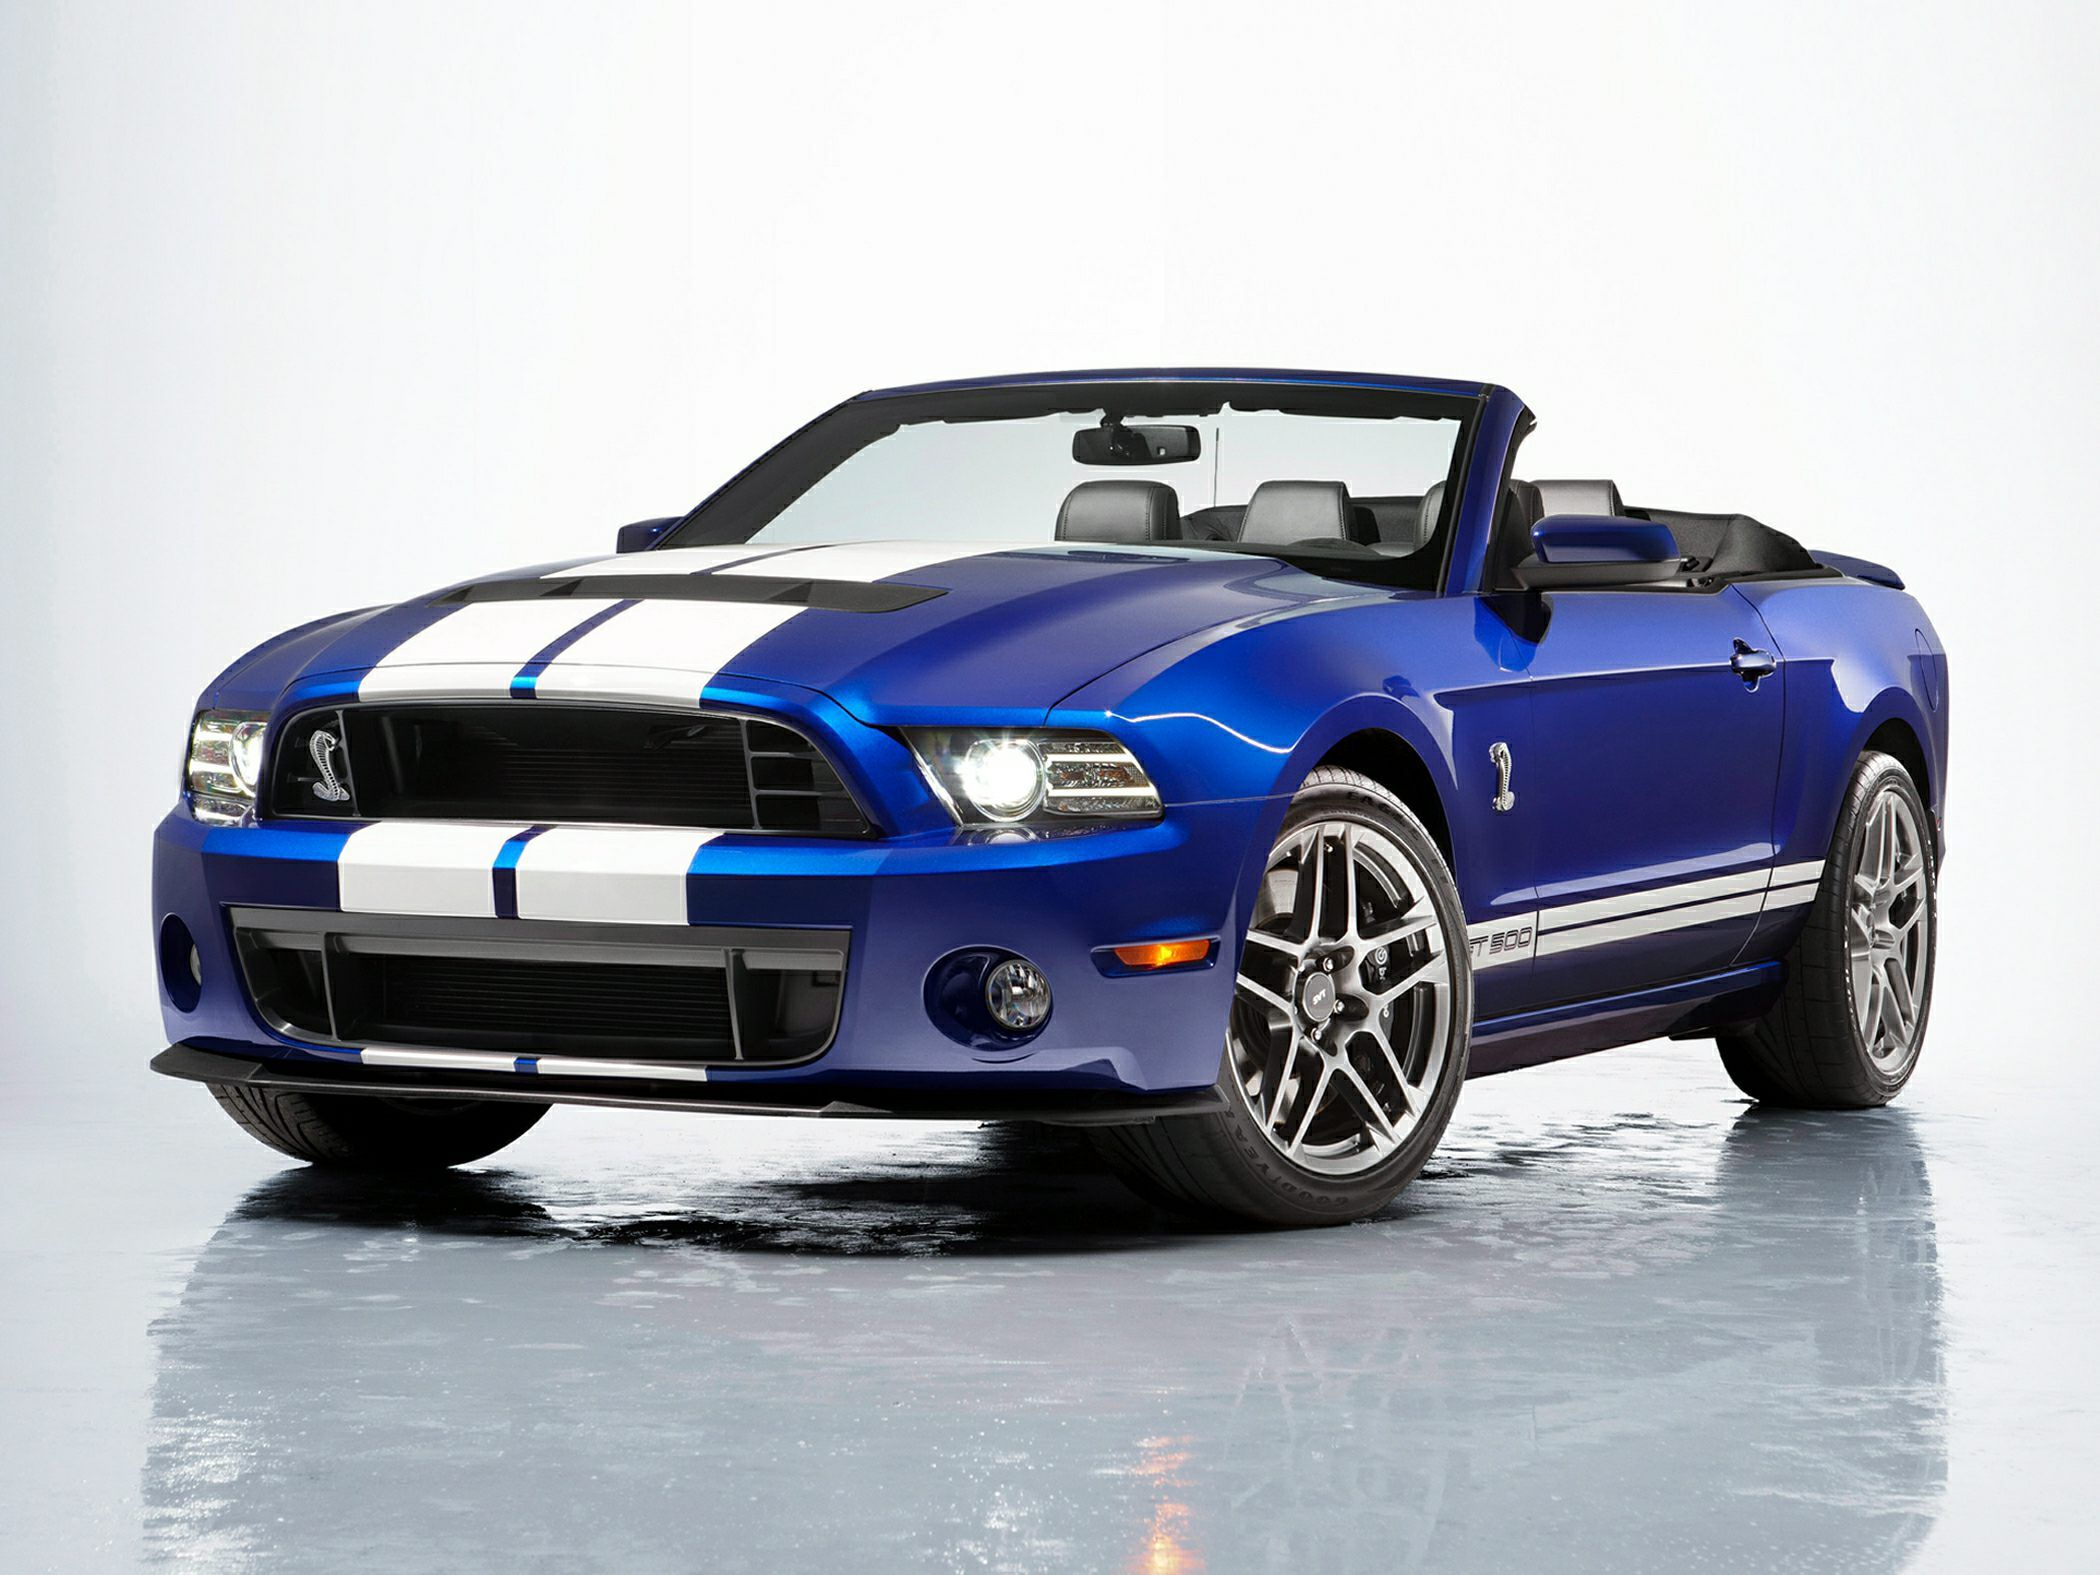 Mustang Gt Ford Mustang GT Mustangs My Dream Car And Hot - Cool cars 2014